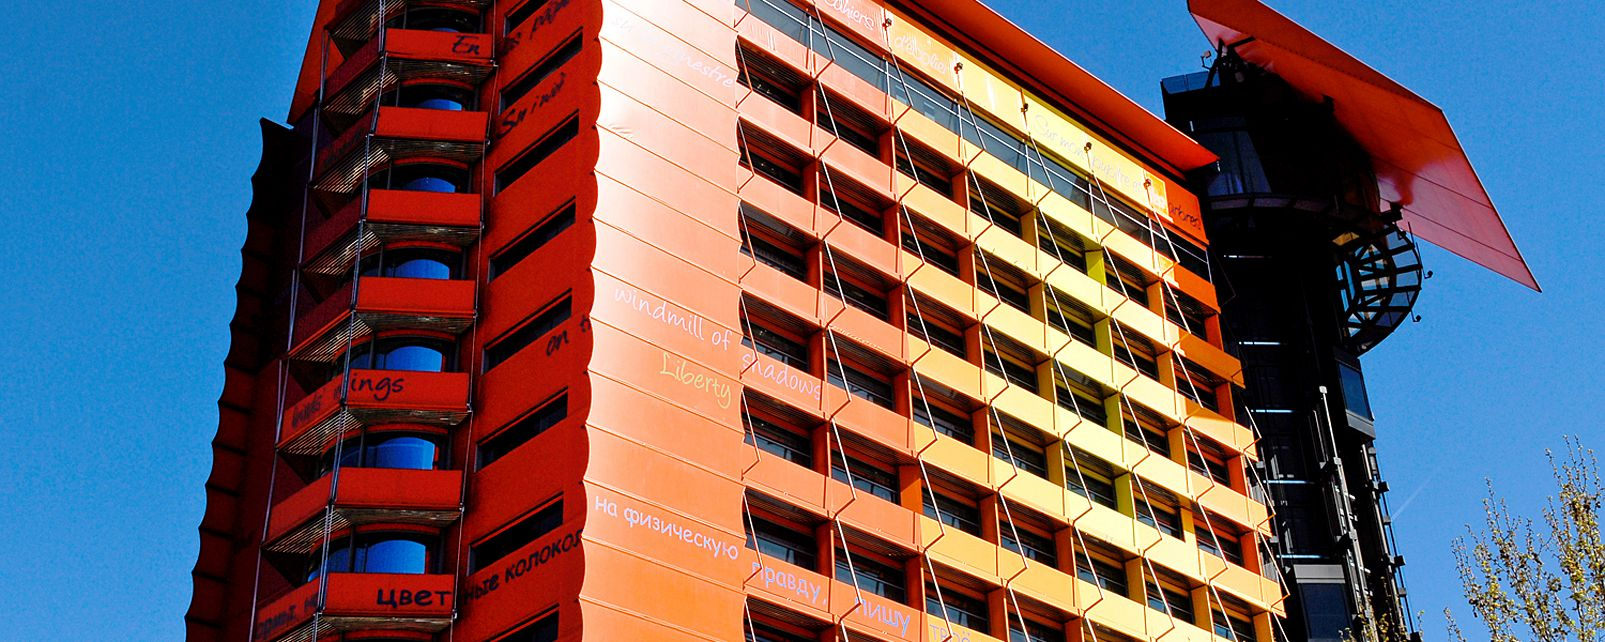 Hotel silken puerta america in for Hotel america madrid